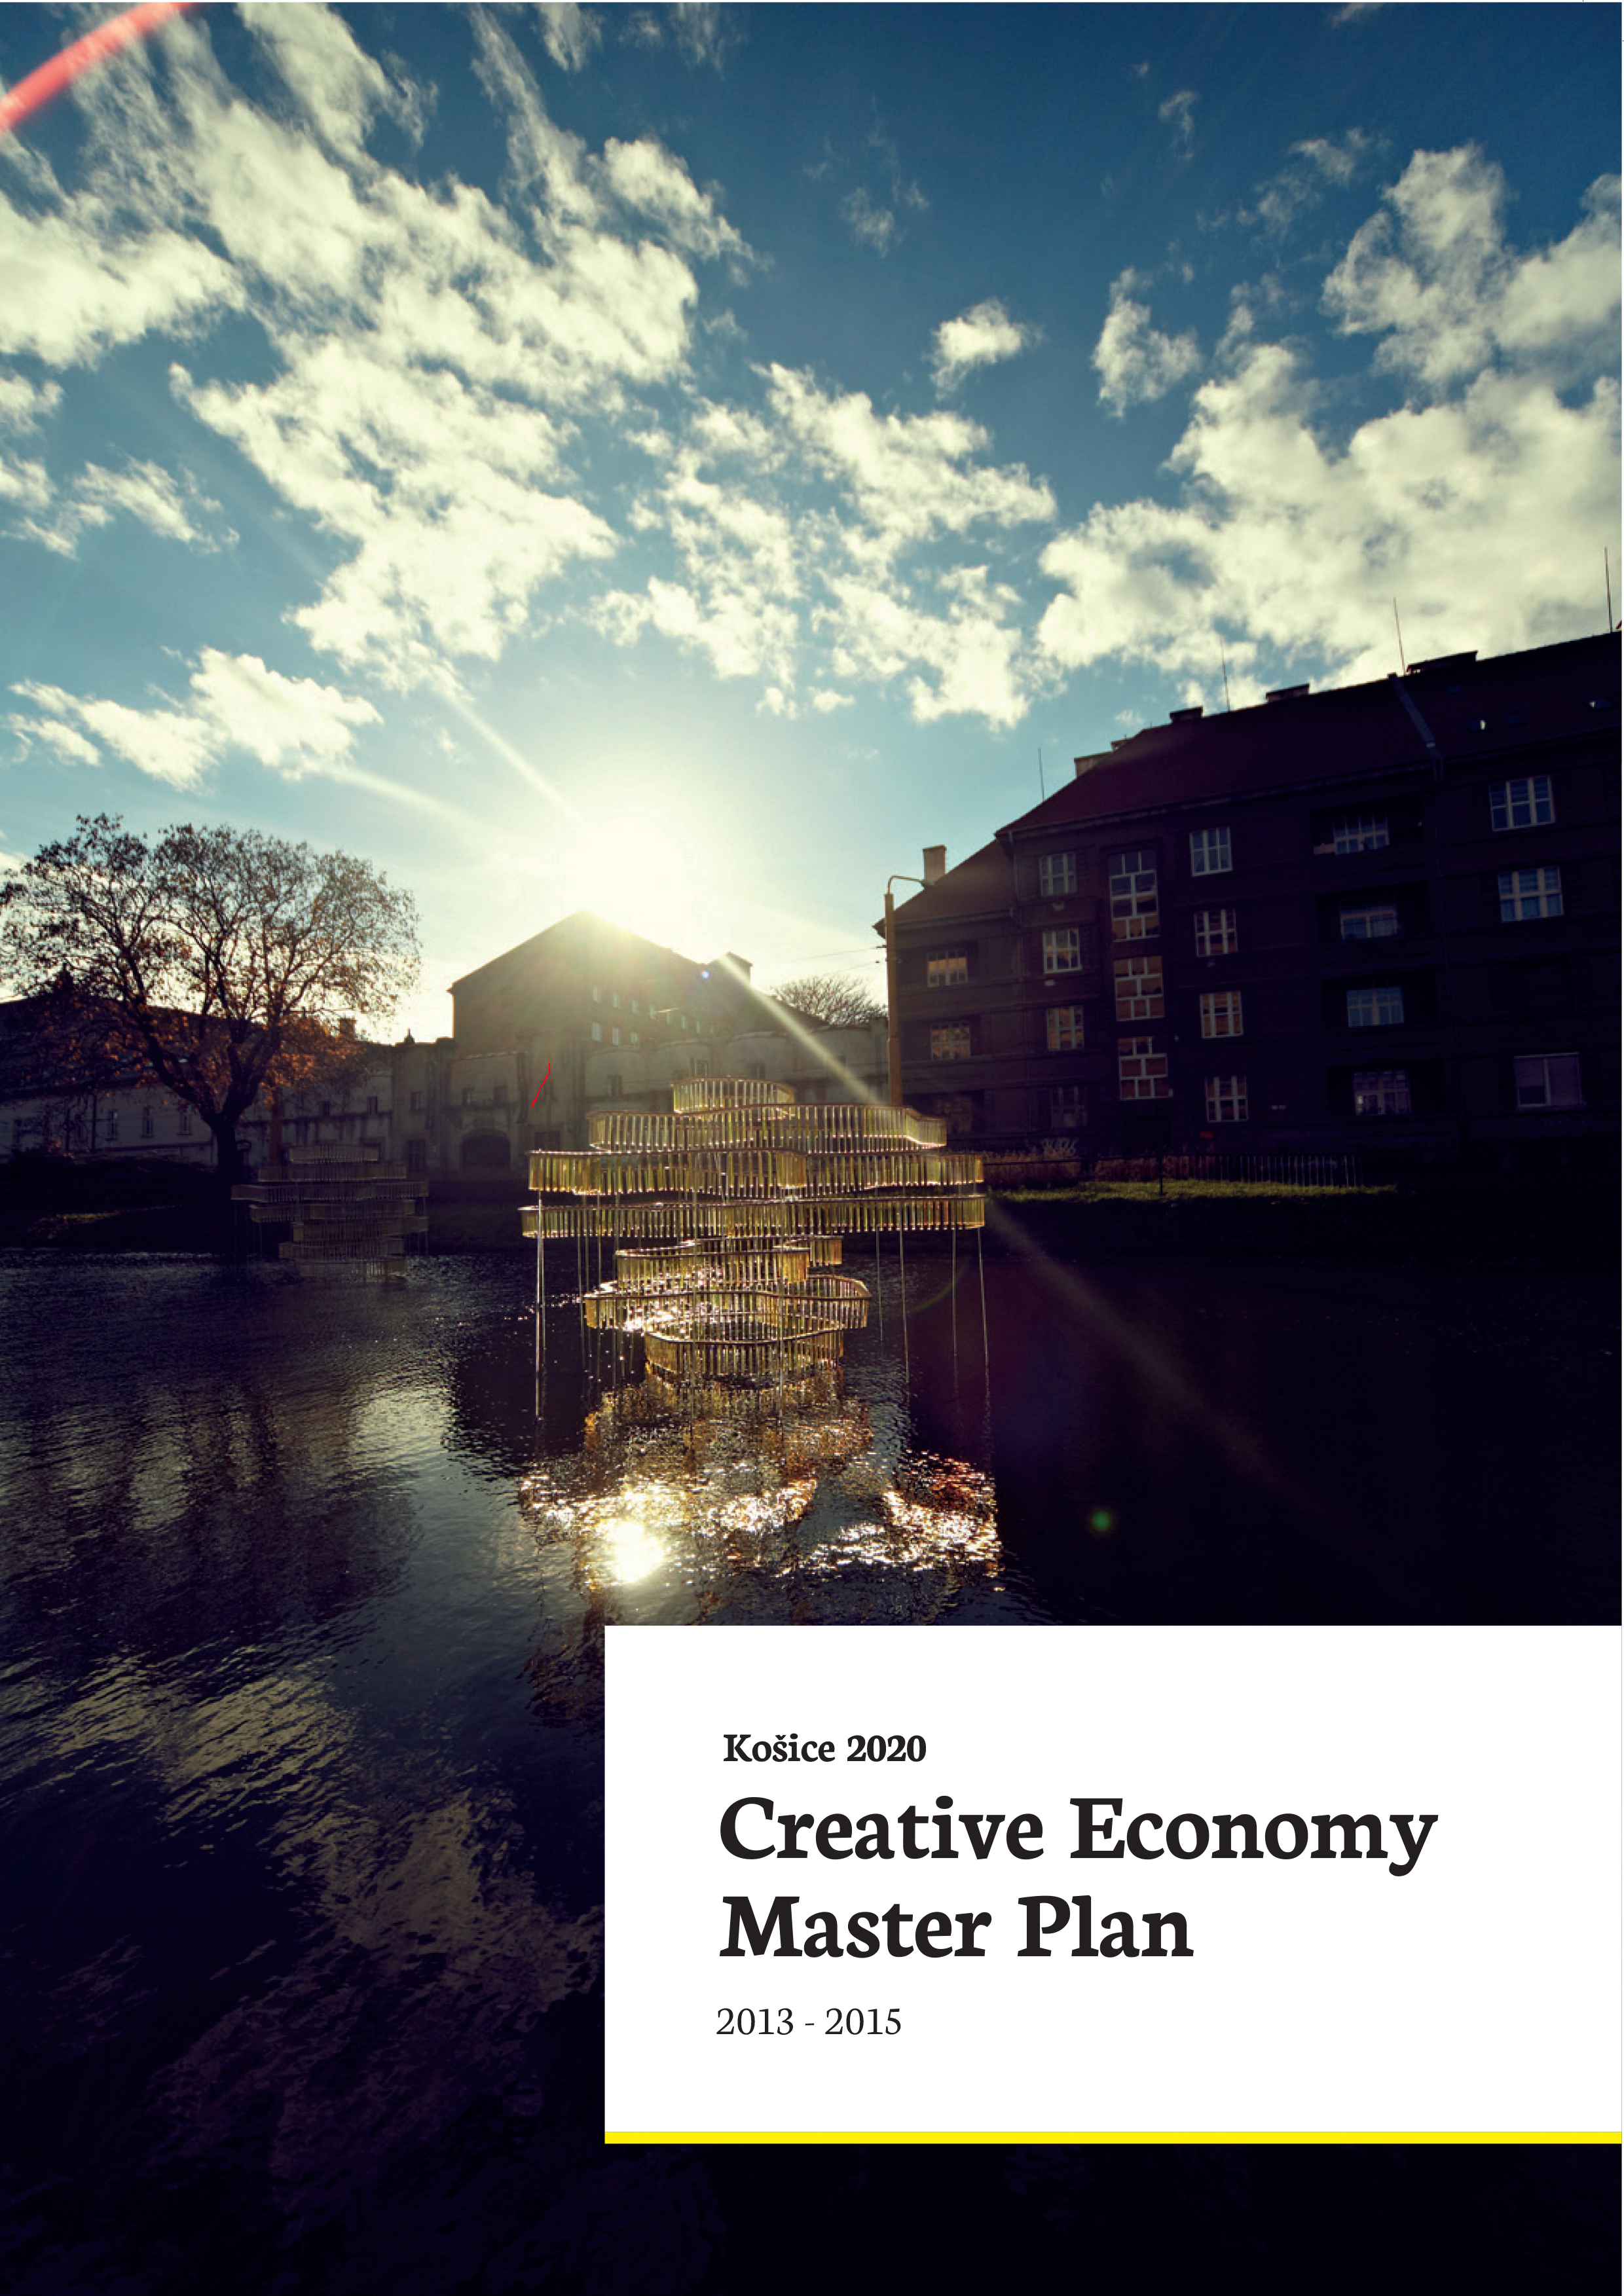 Masterplan for Creative Economy (2013 - 2015)